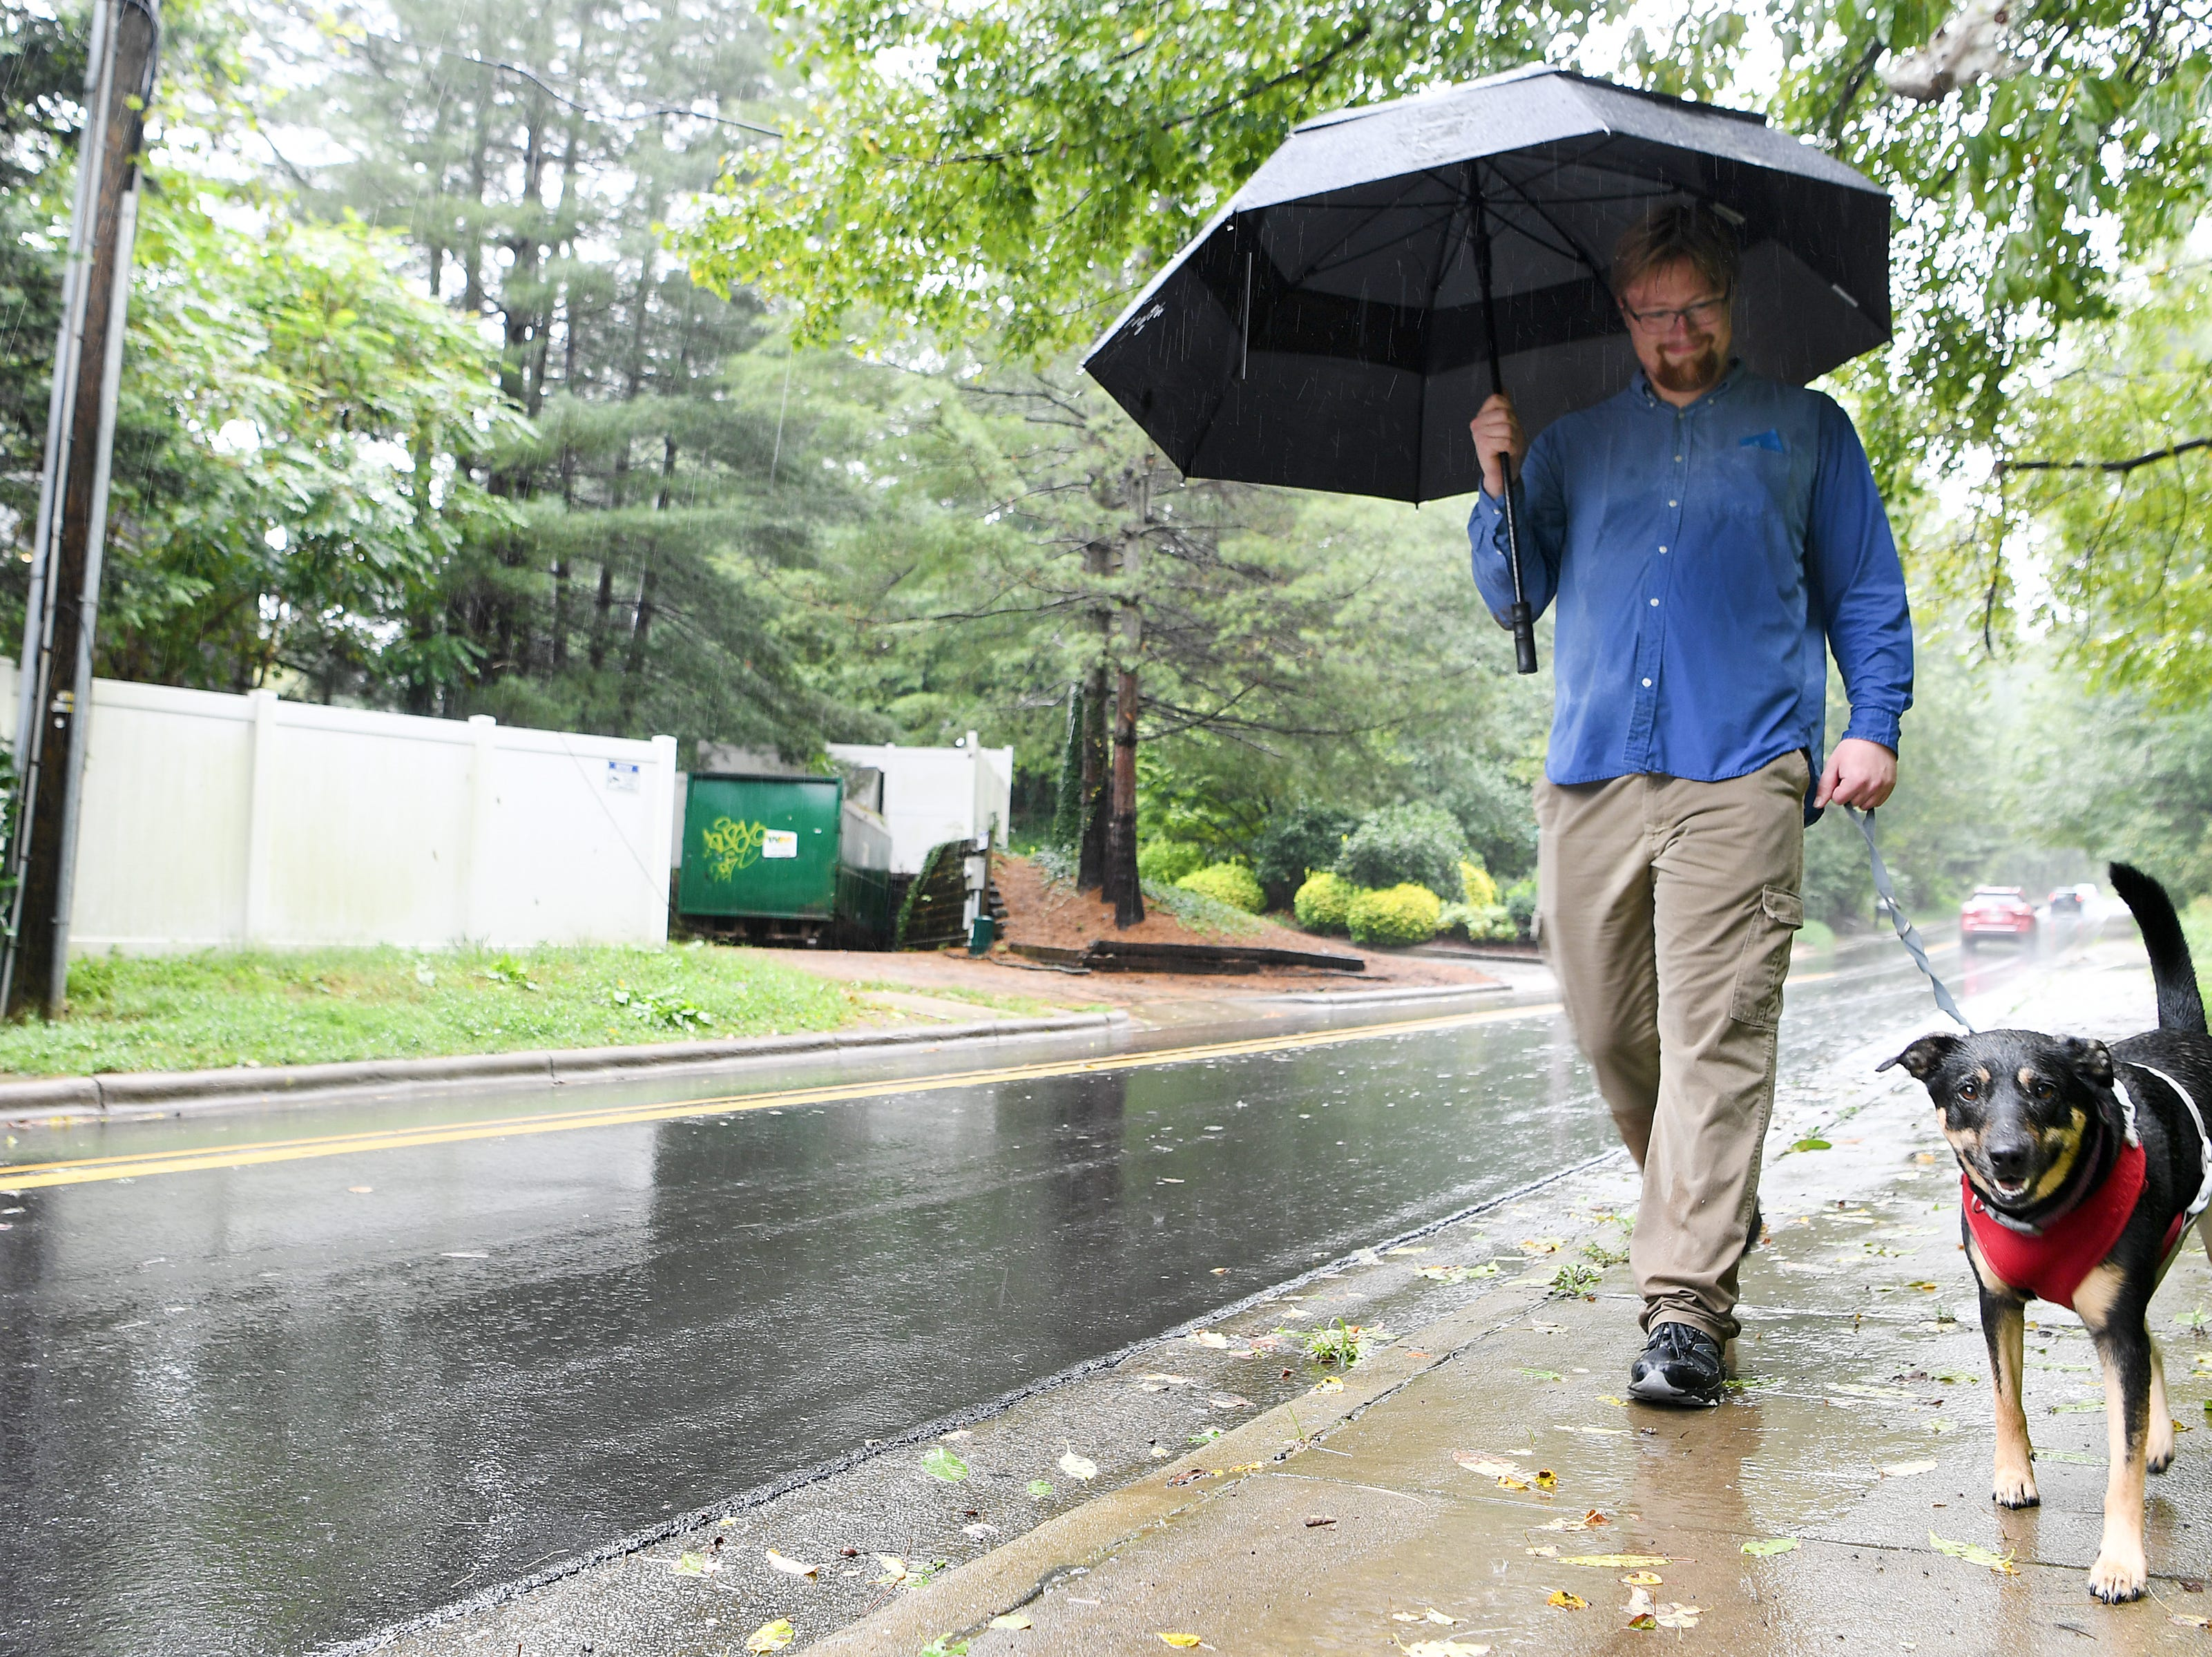 """Anders Joura walks his dog, Maizy, down Beverly Road in Haw Creek as rains from Hurricane Florence, now downgraded to a tropical depression, soaked the area on Sept. 16, 2018. Joura said that the long, wet walk was """"very much her idea."""""""